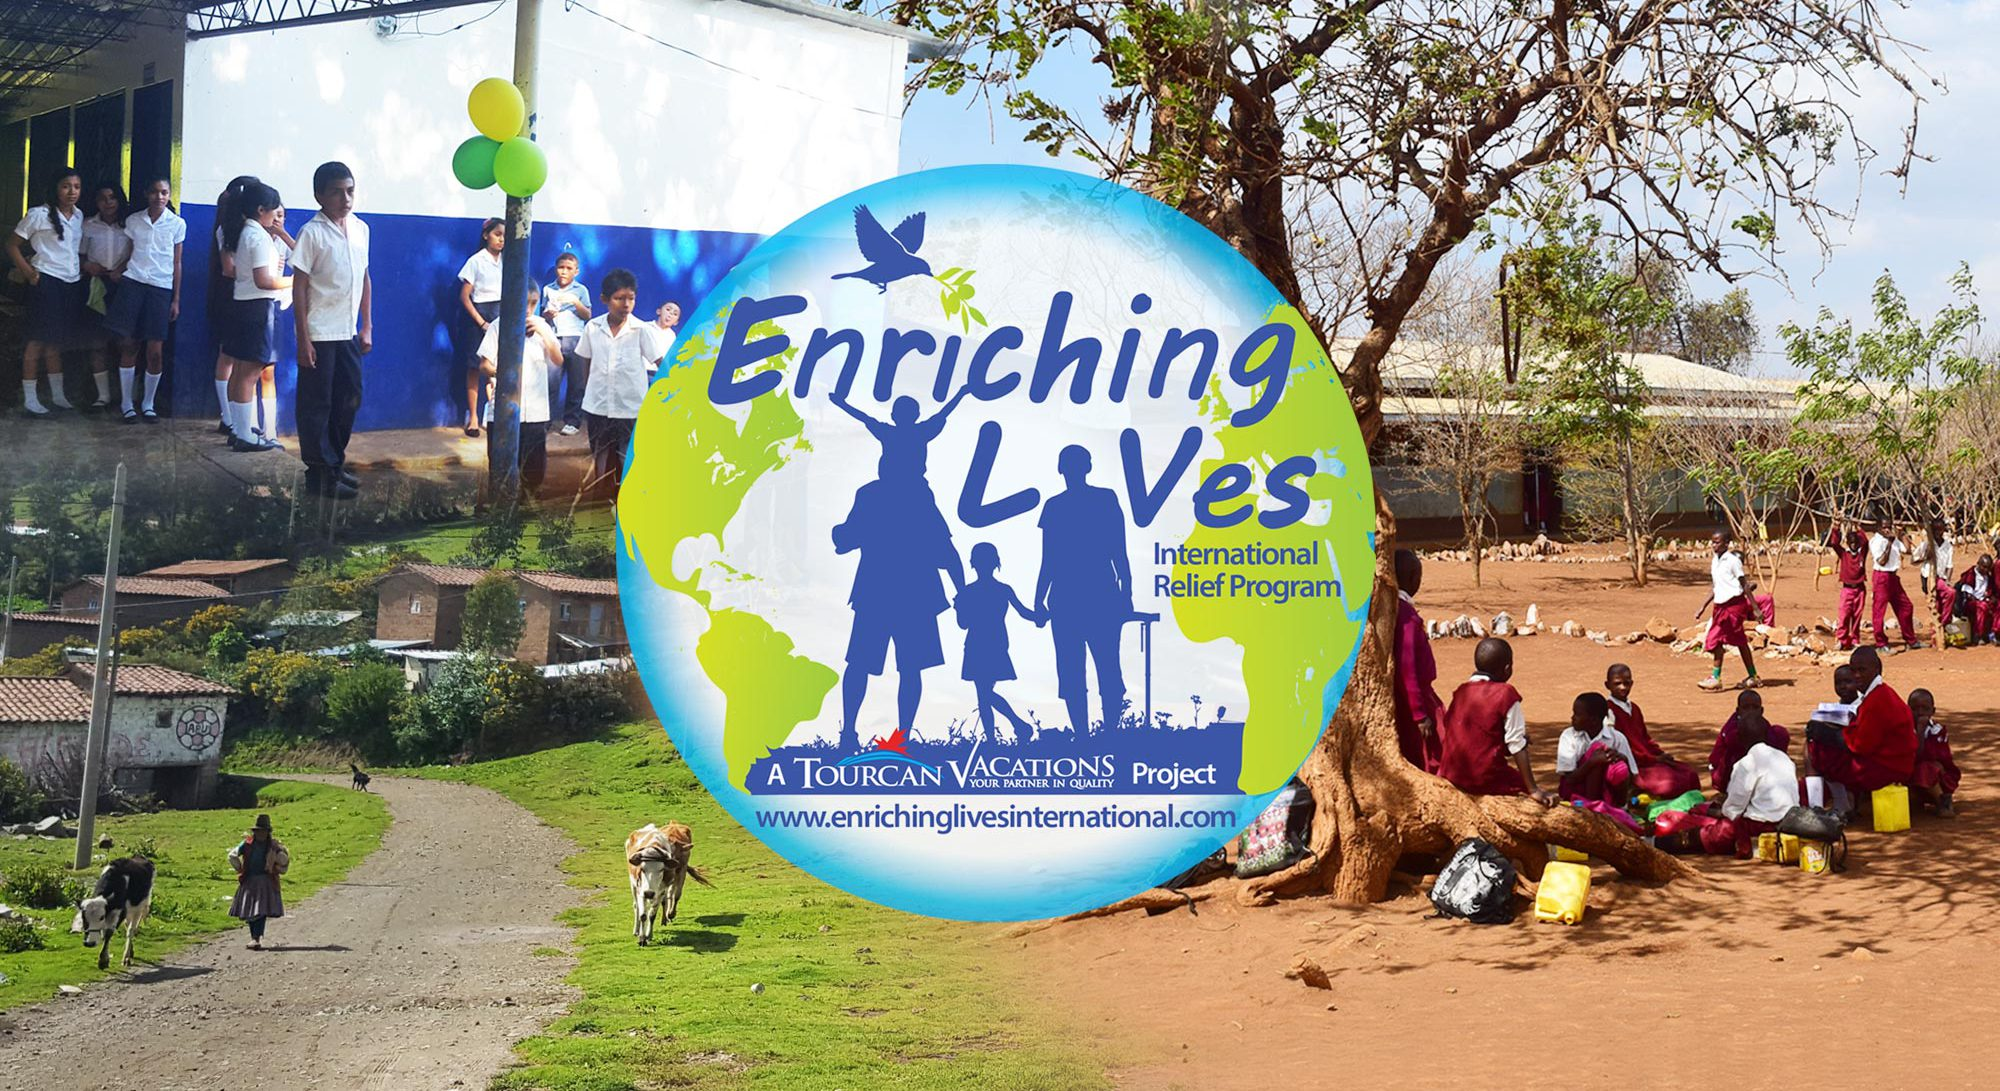 Enriching Lives International Relief Program